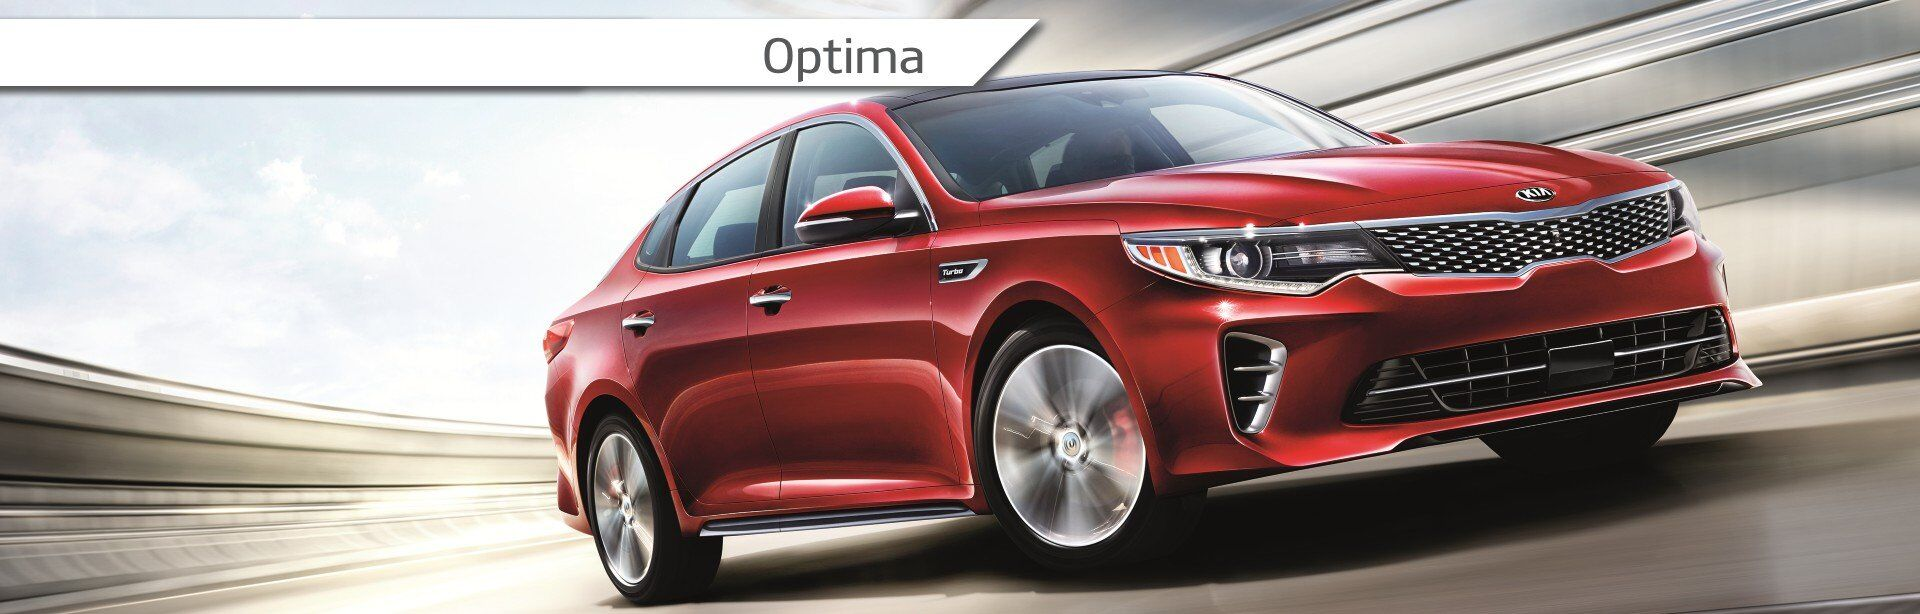 New Kia Optima at John L Sullivan's Roseville Kia